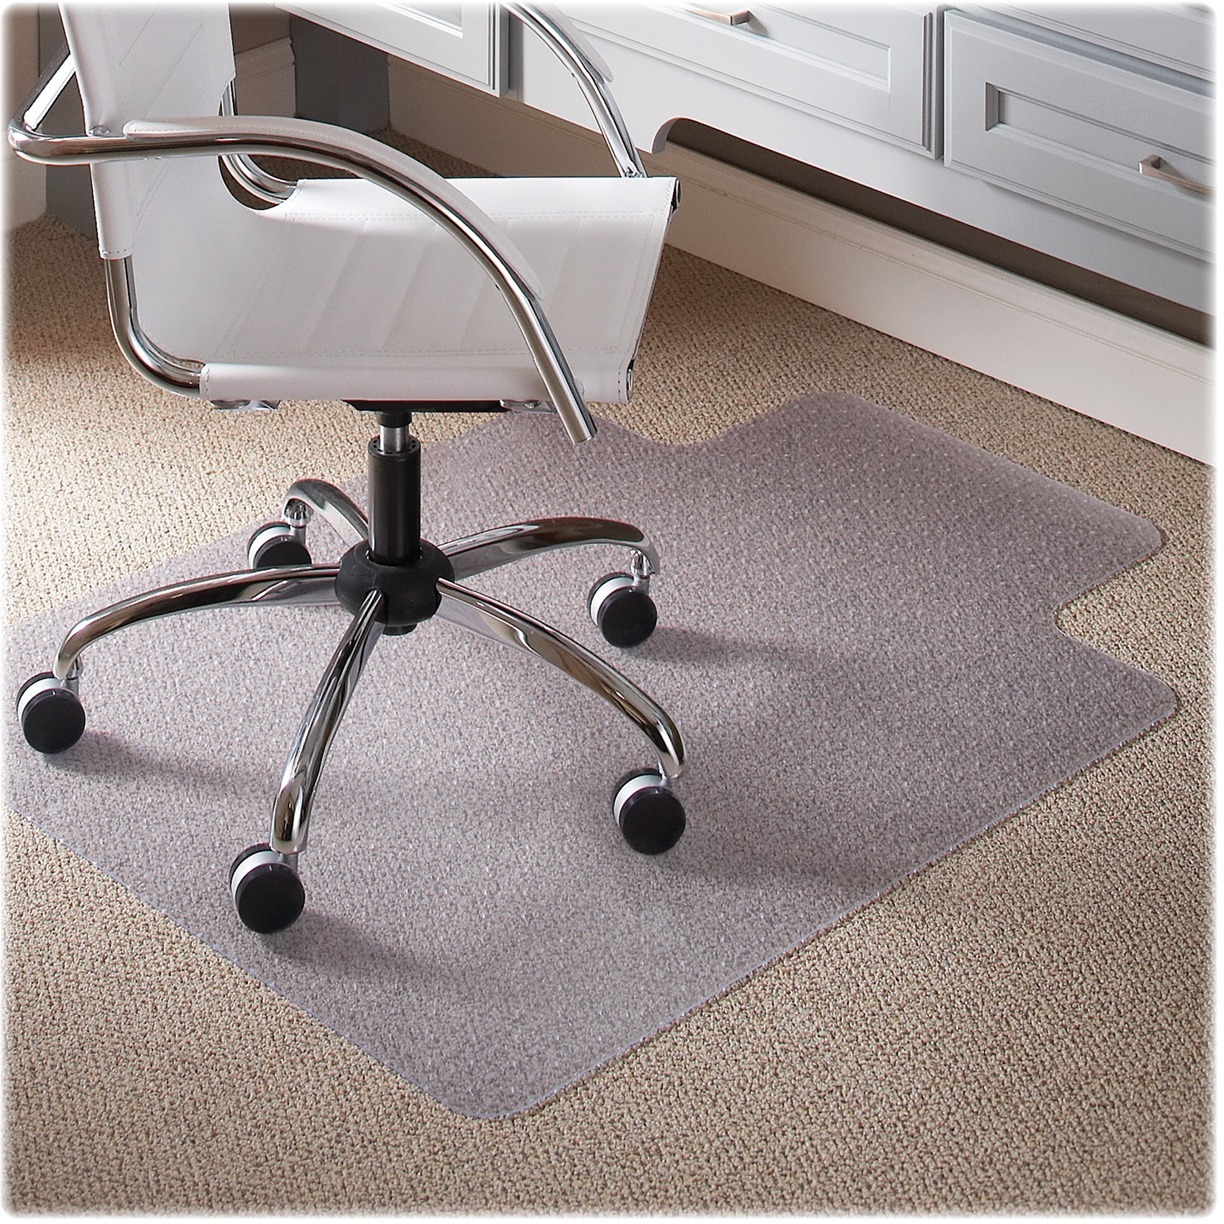 Es Robbins Chair Mat Es Robbins Everlife 36 X 48 Chair Mat For Low Pile Carpet Rectangular With Lip